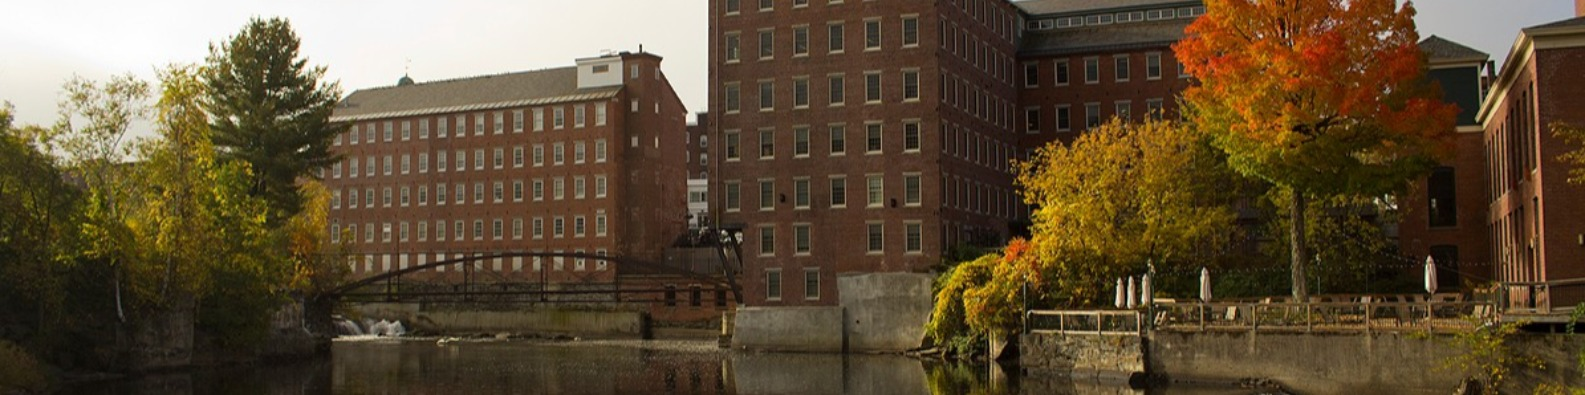 Mill buildings and Sugar River